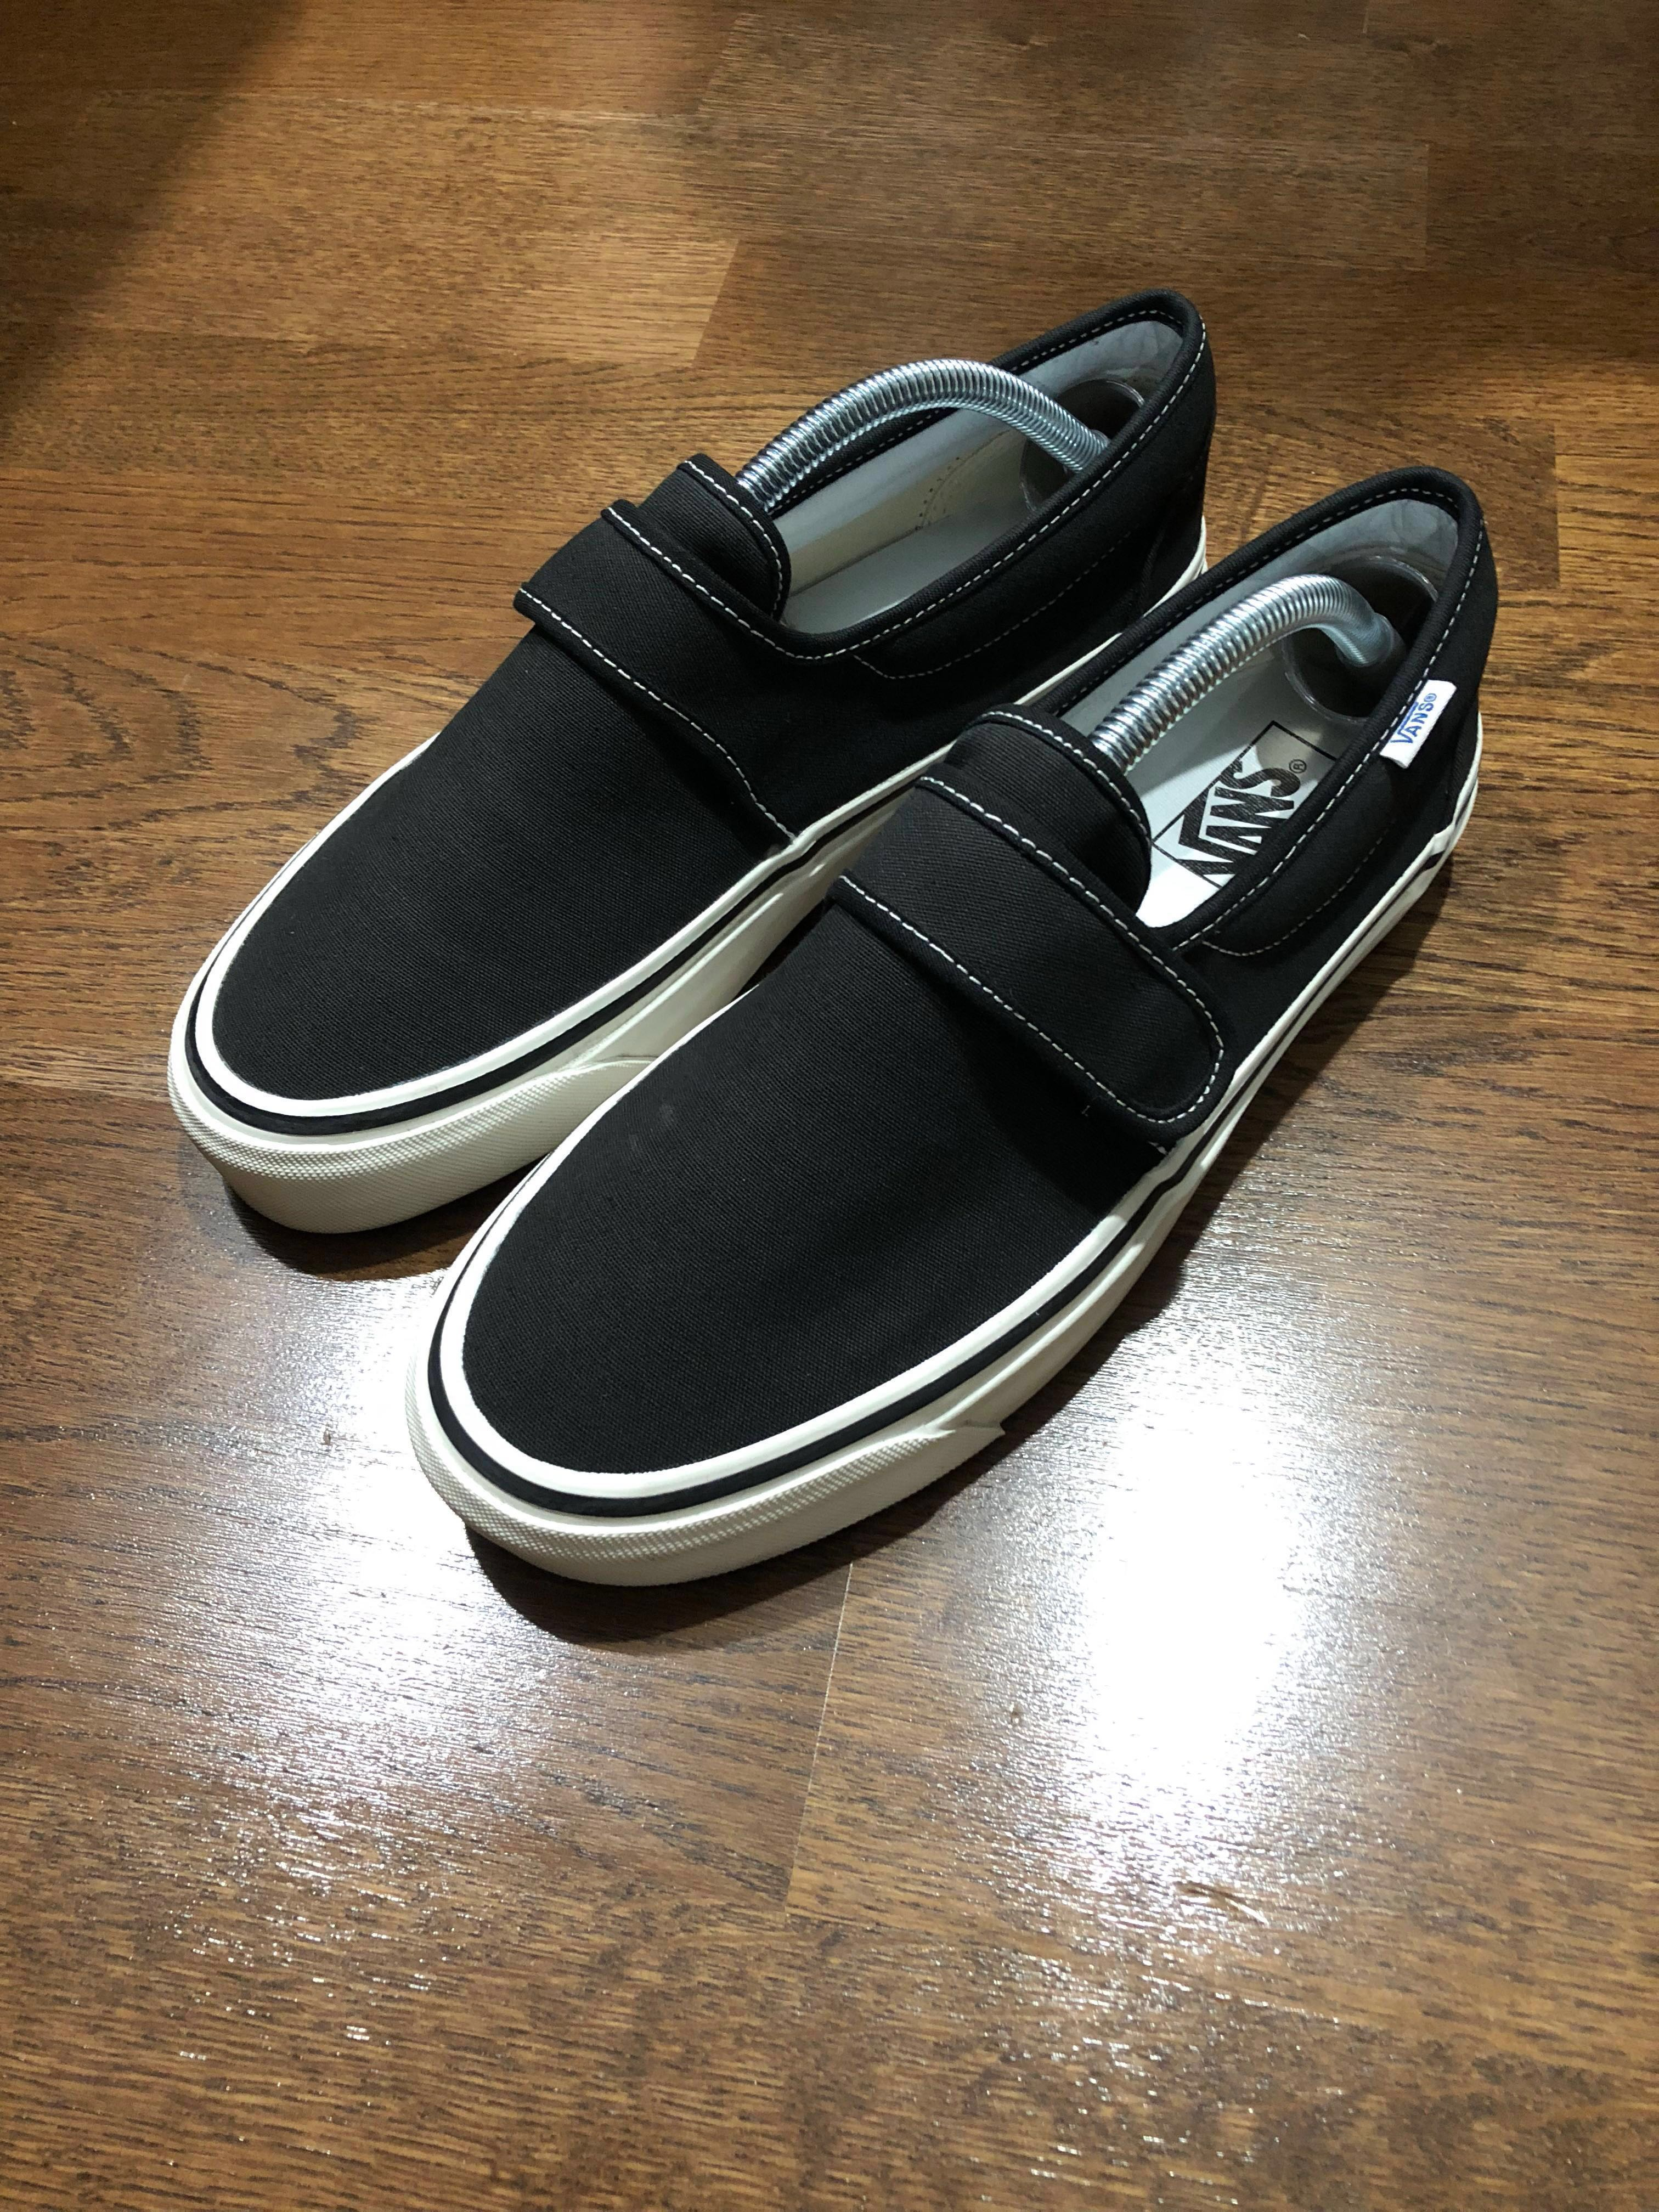 084d34ee7c3a01 Home · Men s Fashion · Footwear · Sneakers. photo photo ...